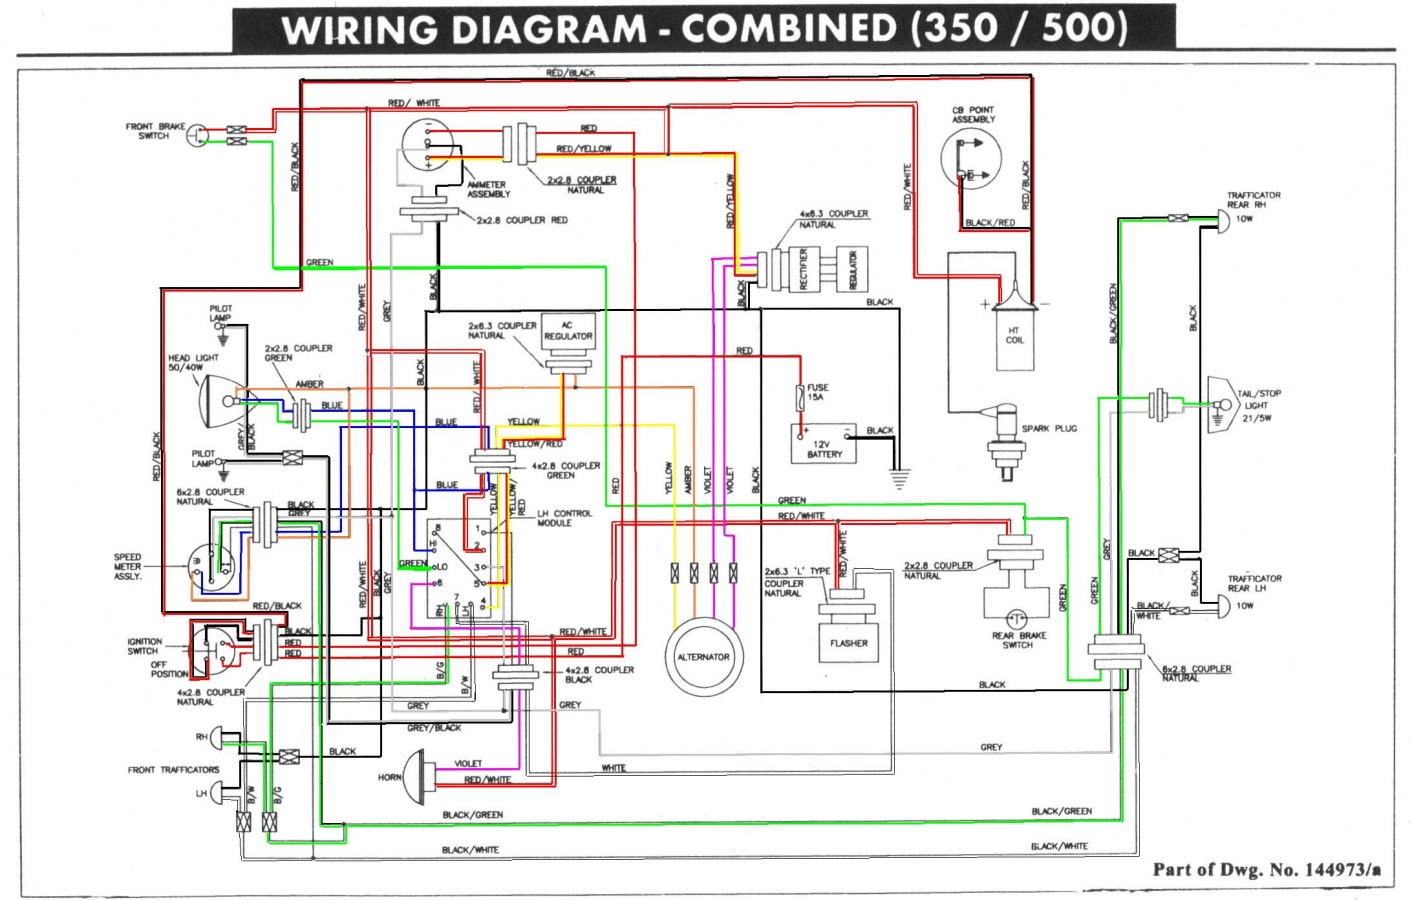 diagrams 875667 royal enfield 350 wiring diagram royal enfield royal enfield wiring diagrams at readyjetset.co